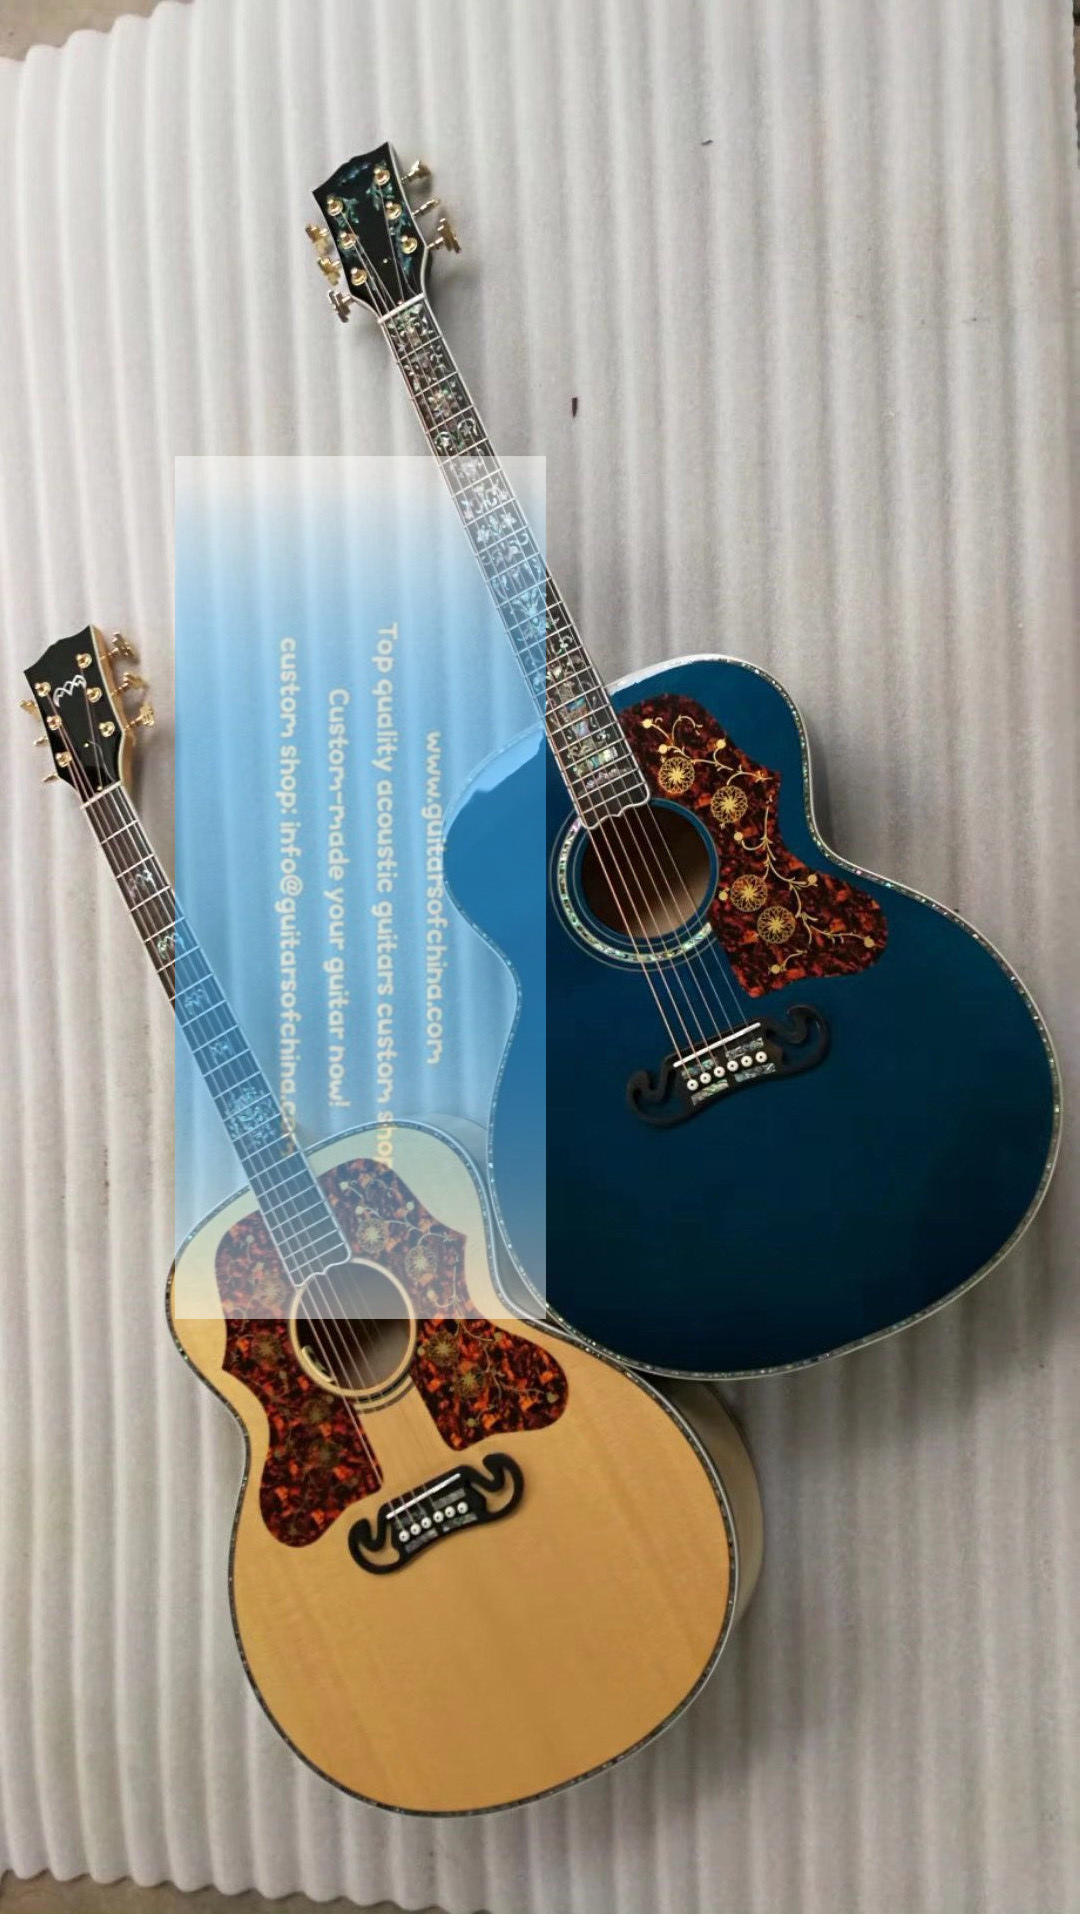 customized chibson sj 200 sj200 super jumbo type acoustic guitar all solid guitar of china. Black Bedroom Furniture Sets. Home Design Ideas